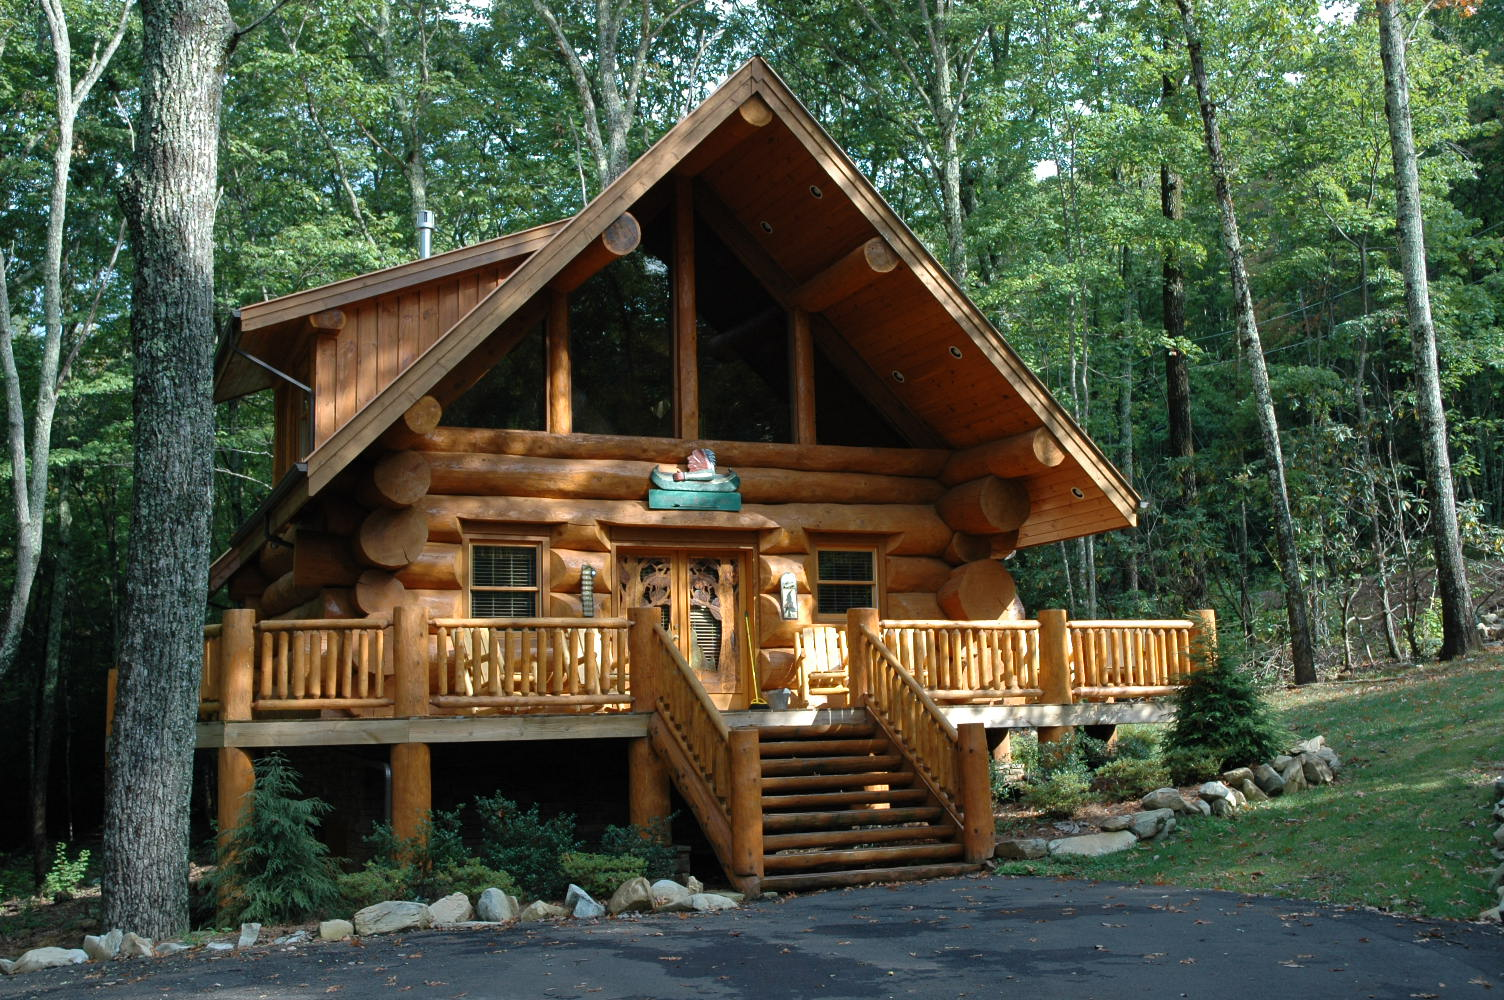 History of log cabins in the united states smoky Cabin rental smokey mountains